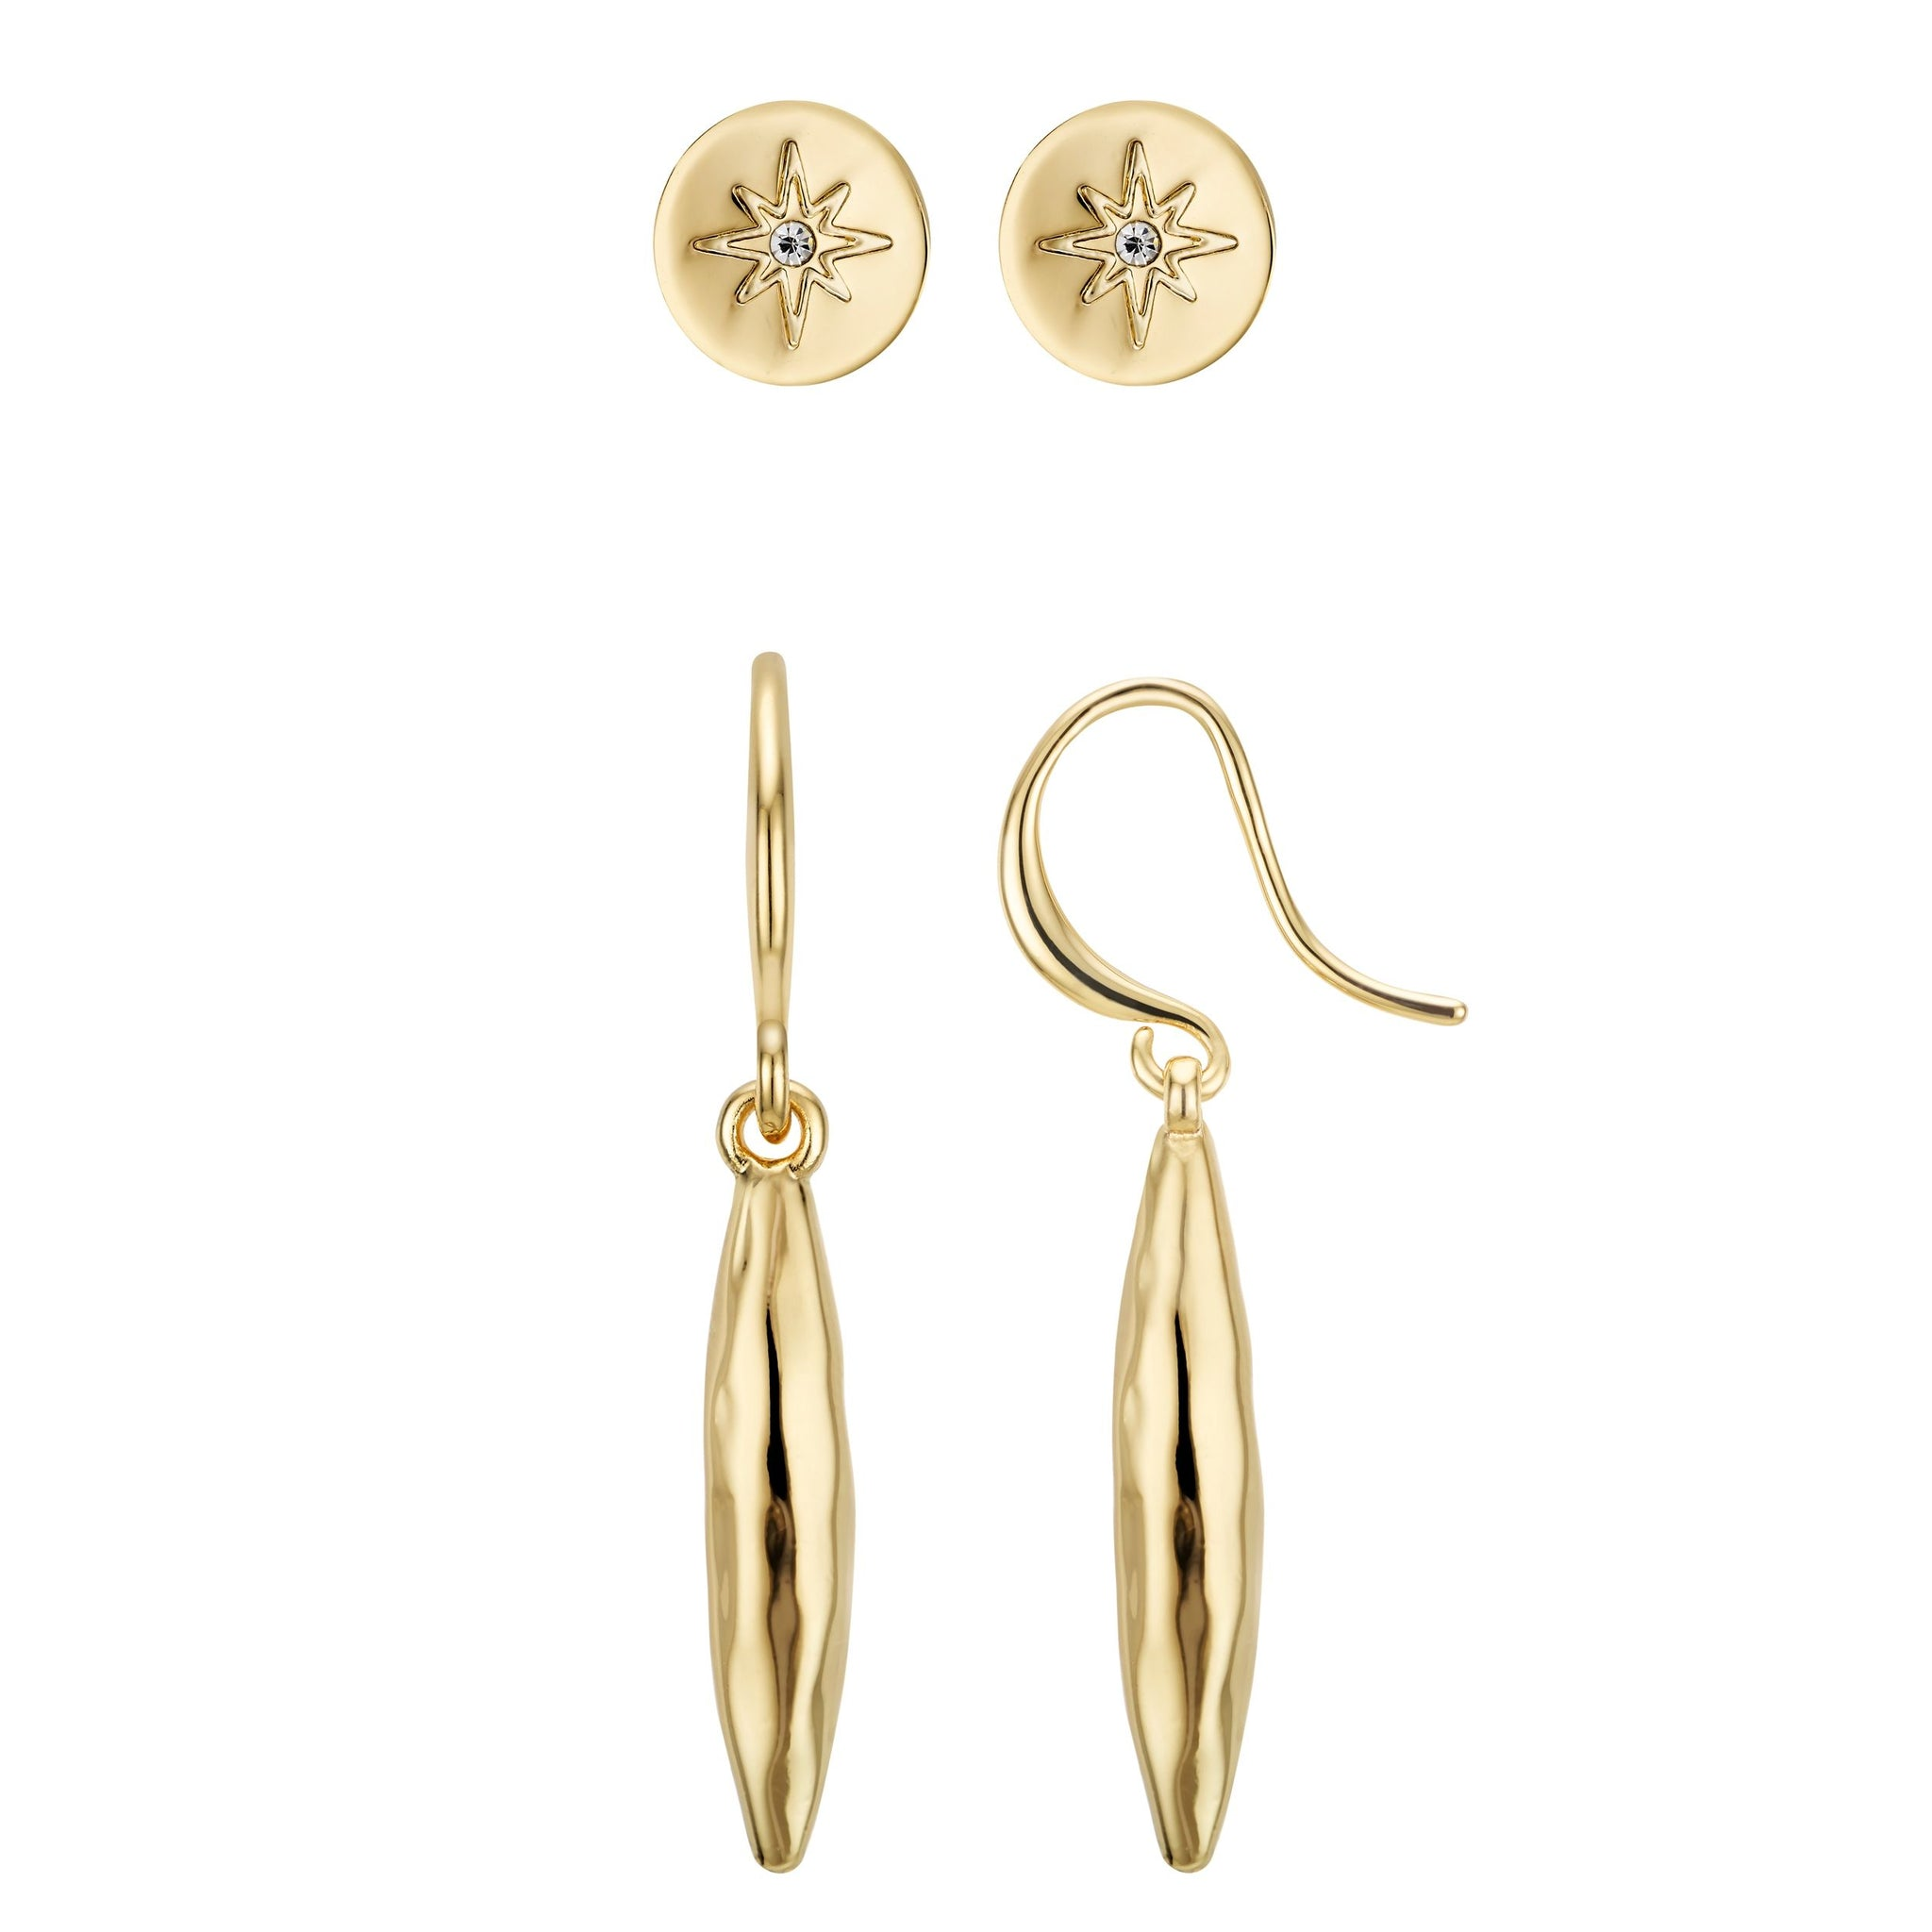 Buckley London, Eyre Hammered Earring Duo - Gold